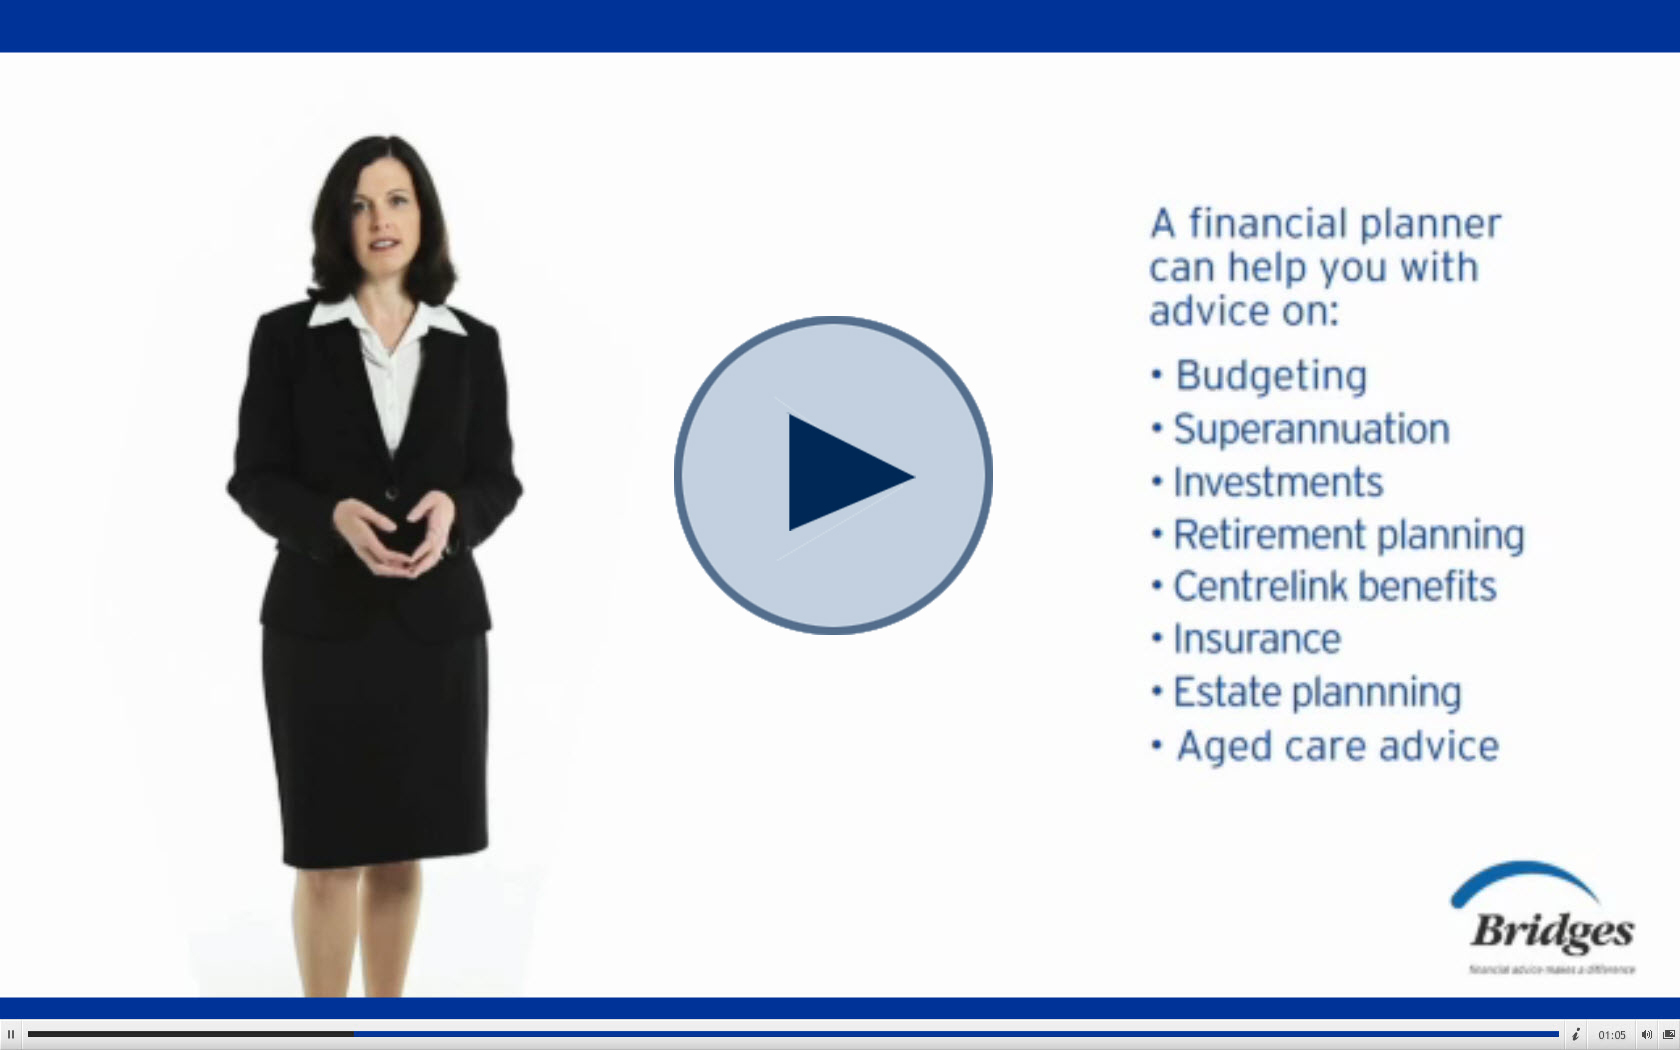 How a financial planner can help